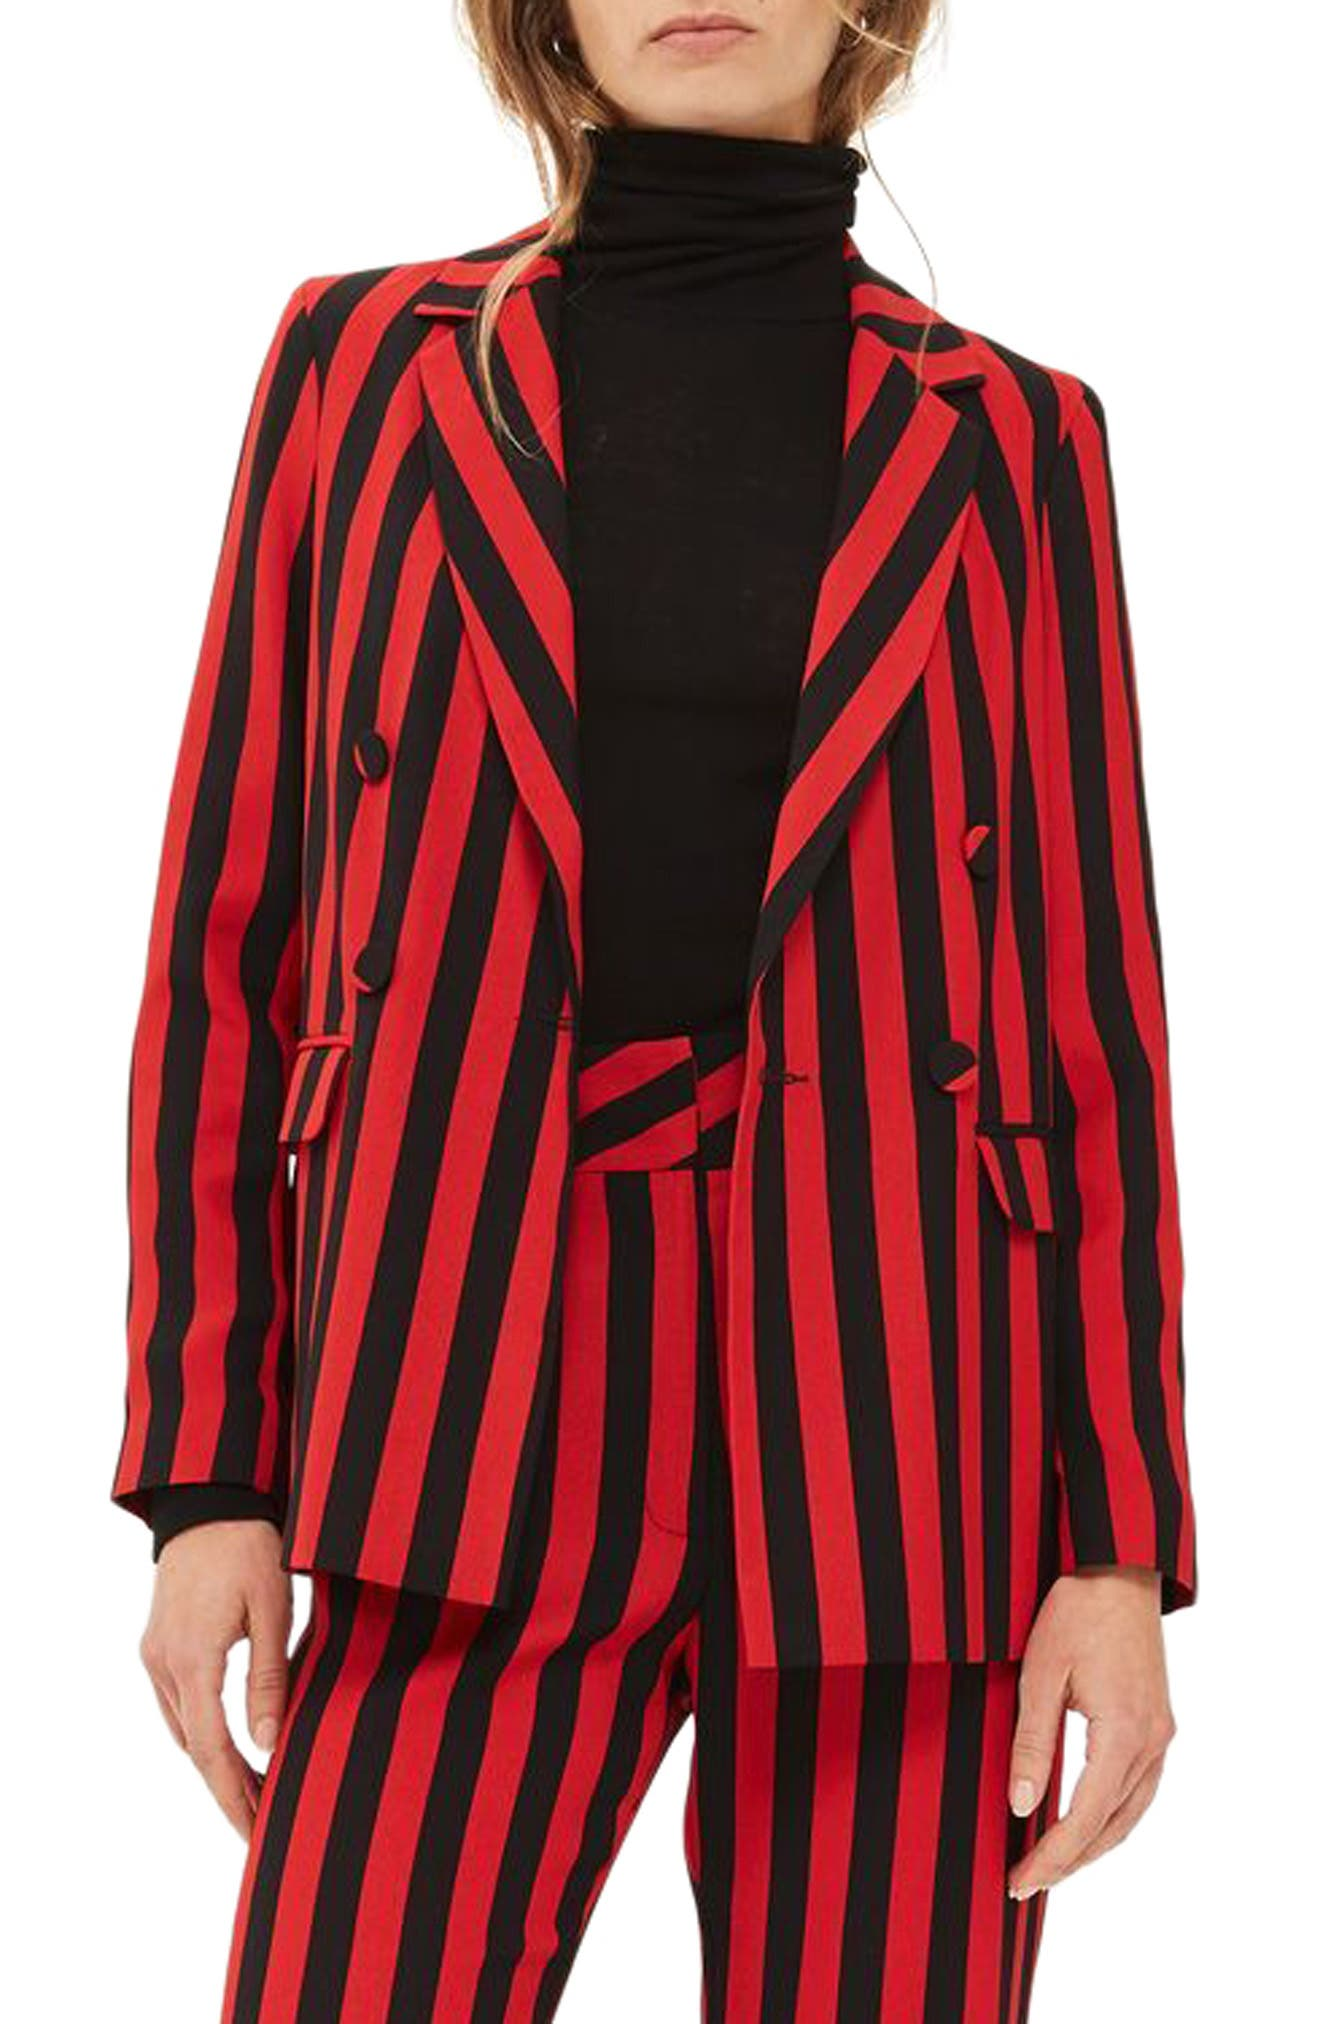 Humbug Stripe Double Breasted Blazer,                         Main,                         color, 601